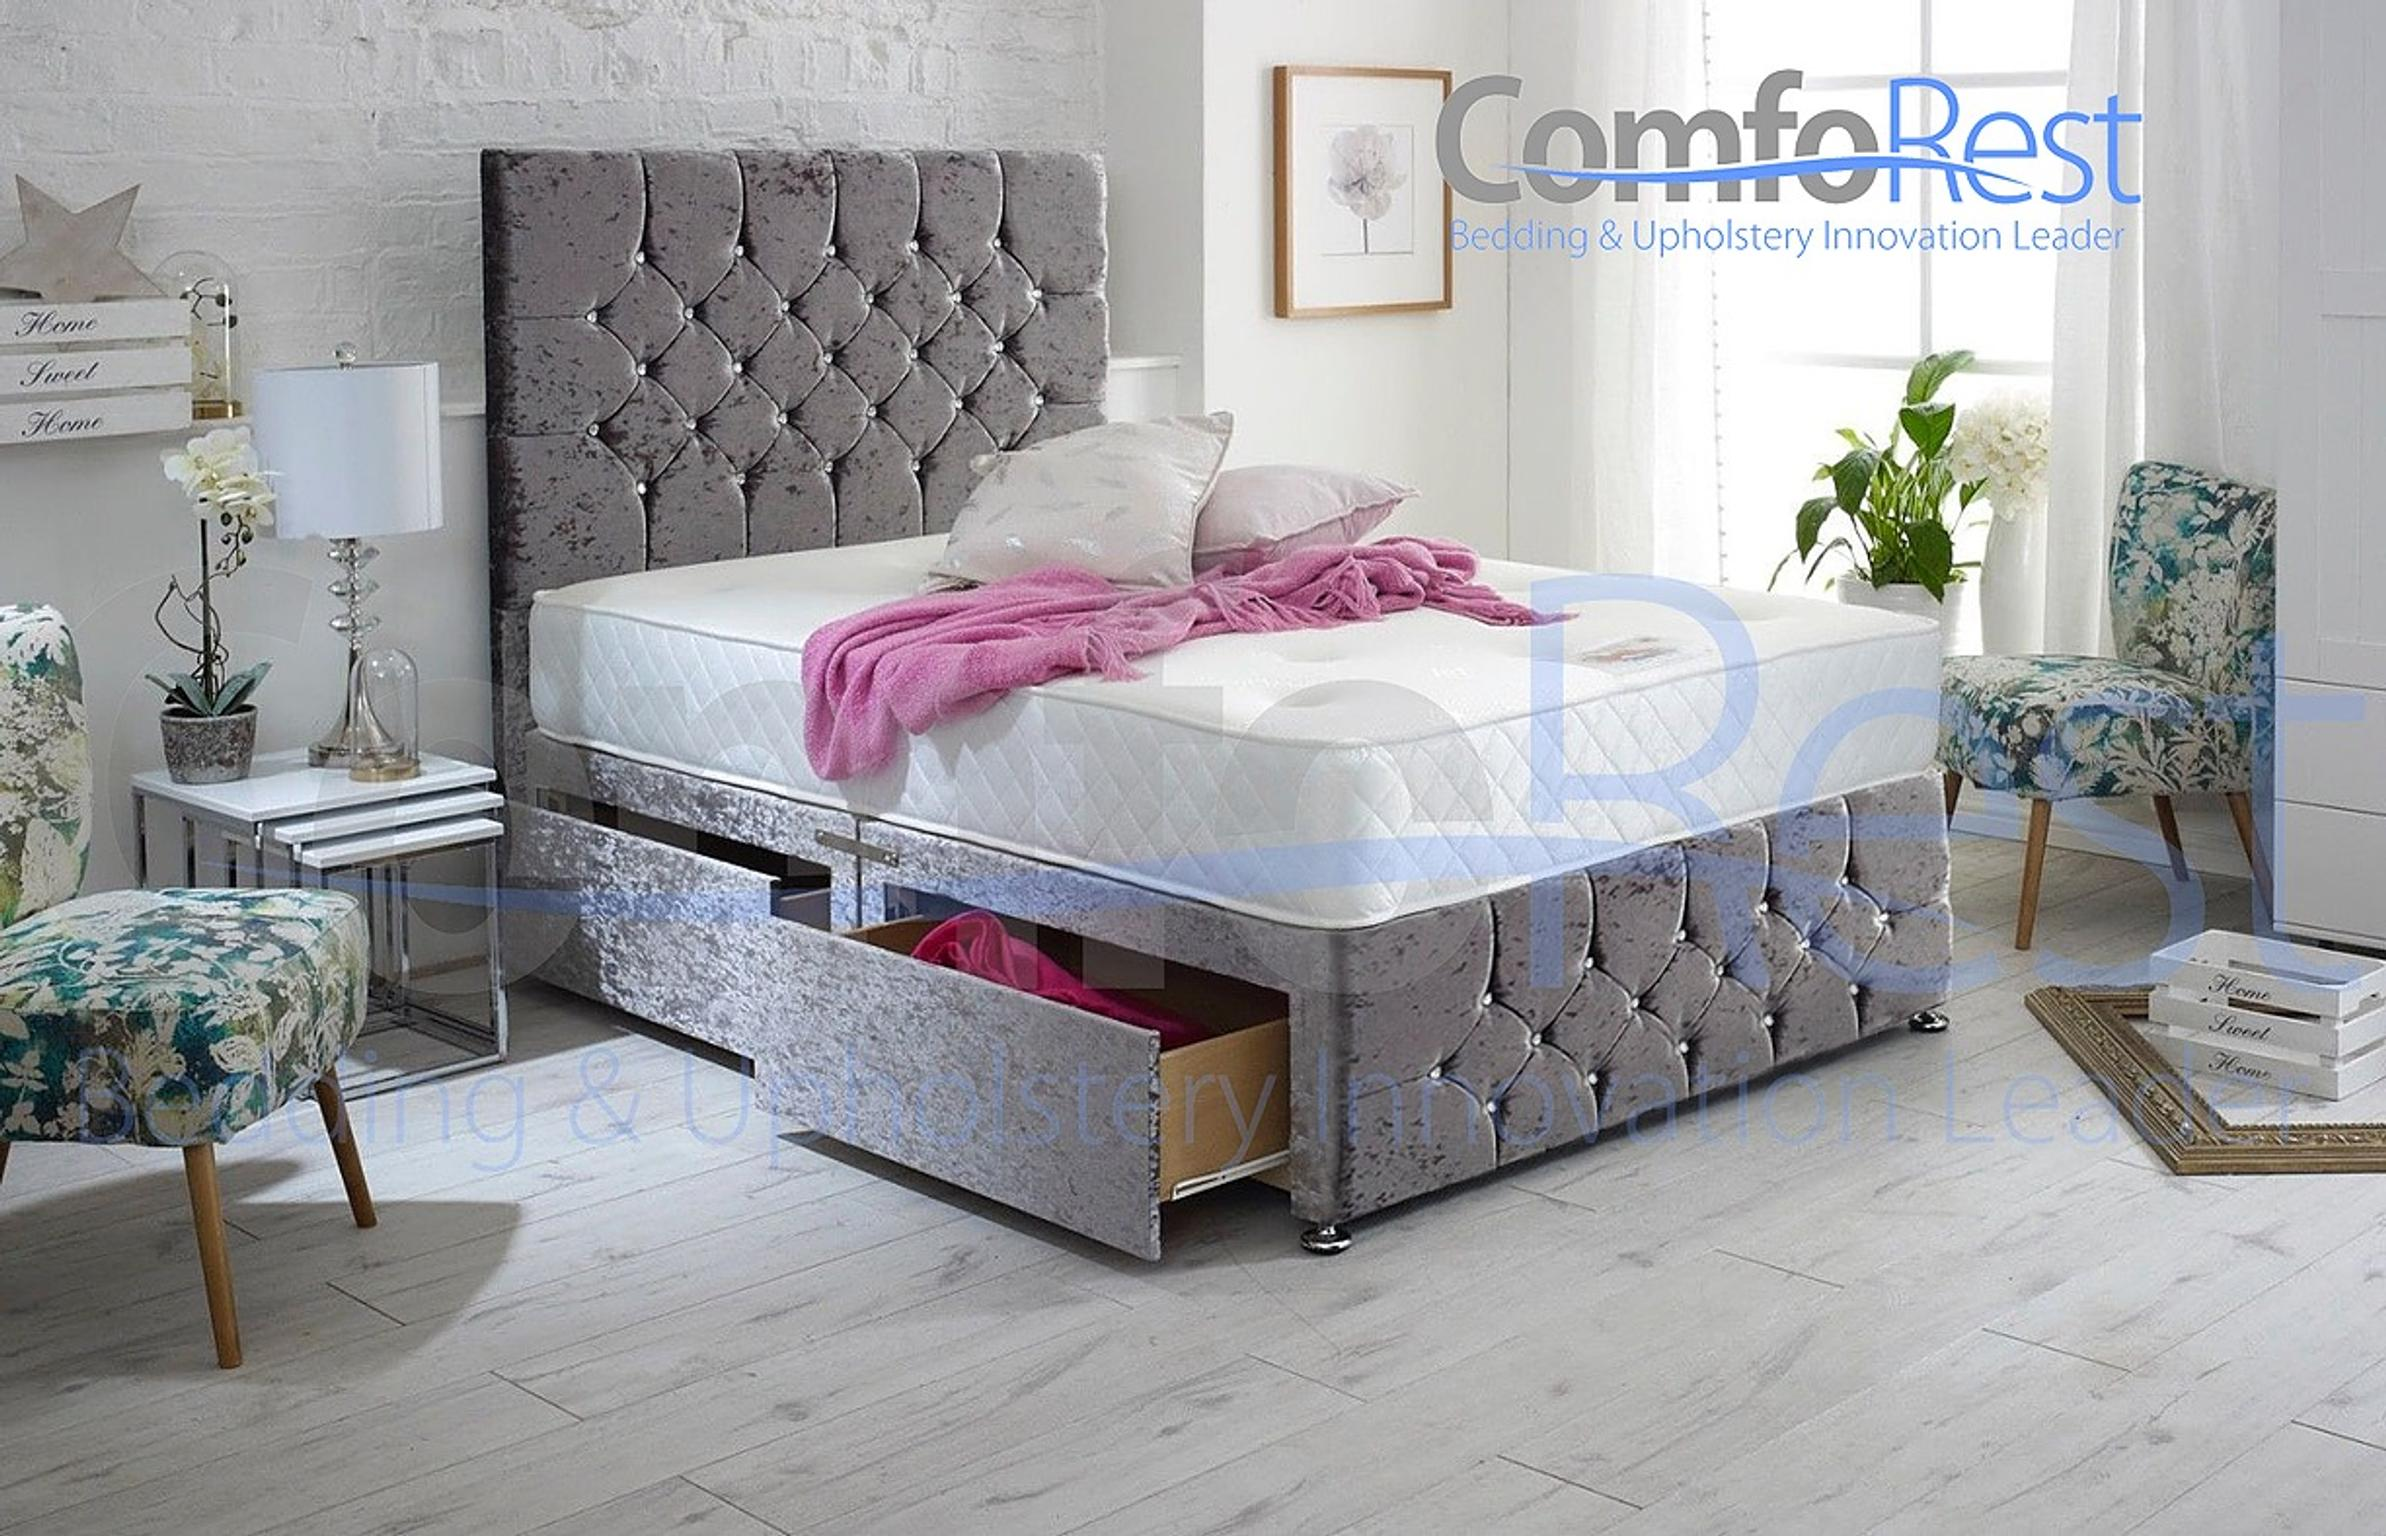 9591cddb7d71 Crushed Velvet Ibex Plus Extra Storage Bed in G45 4AN Birmingham for  £179.00 for sale - Shpock